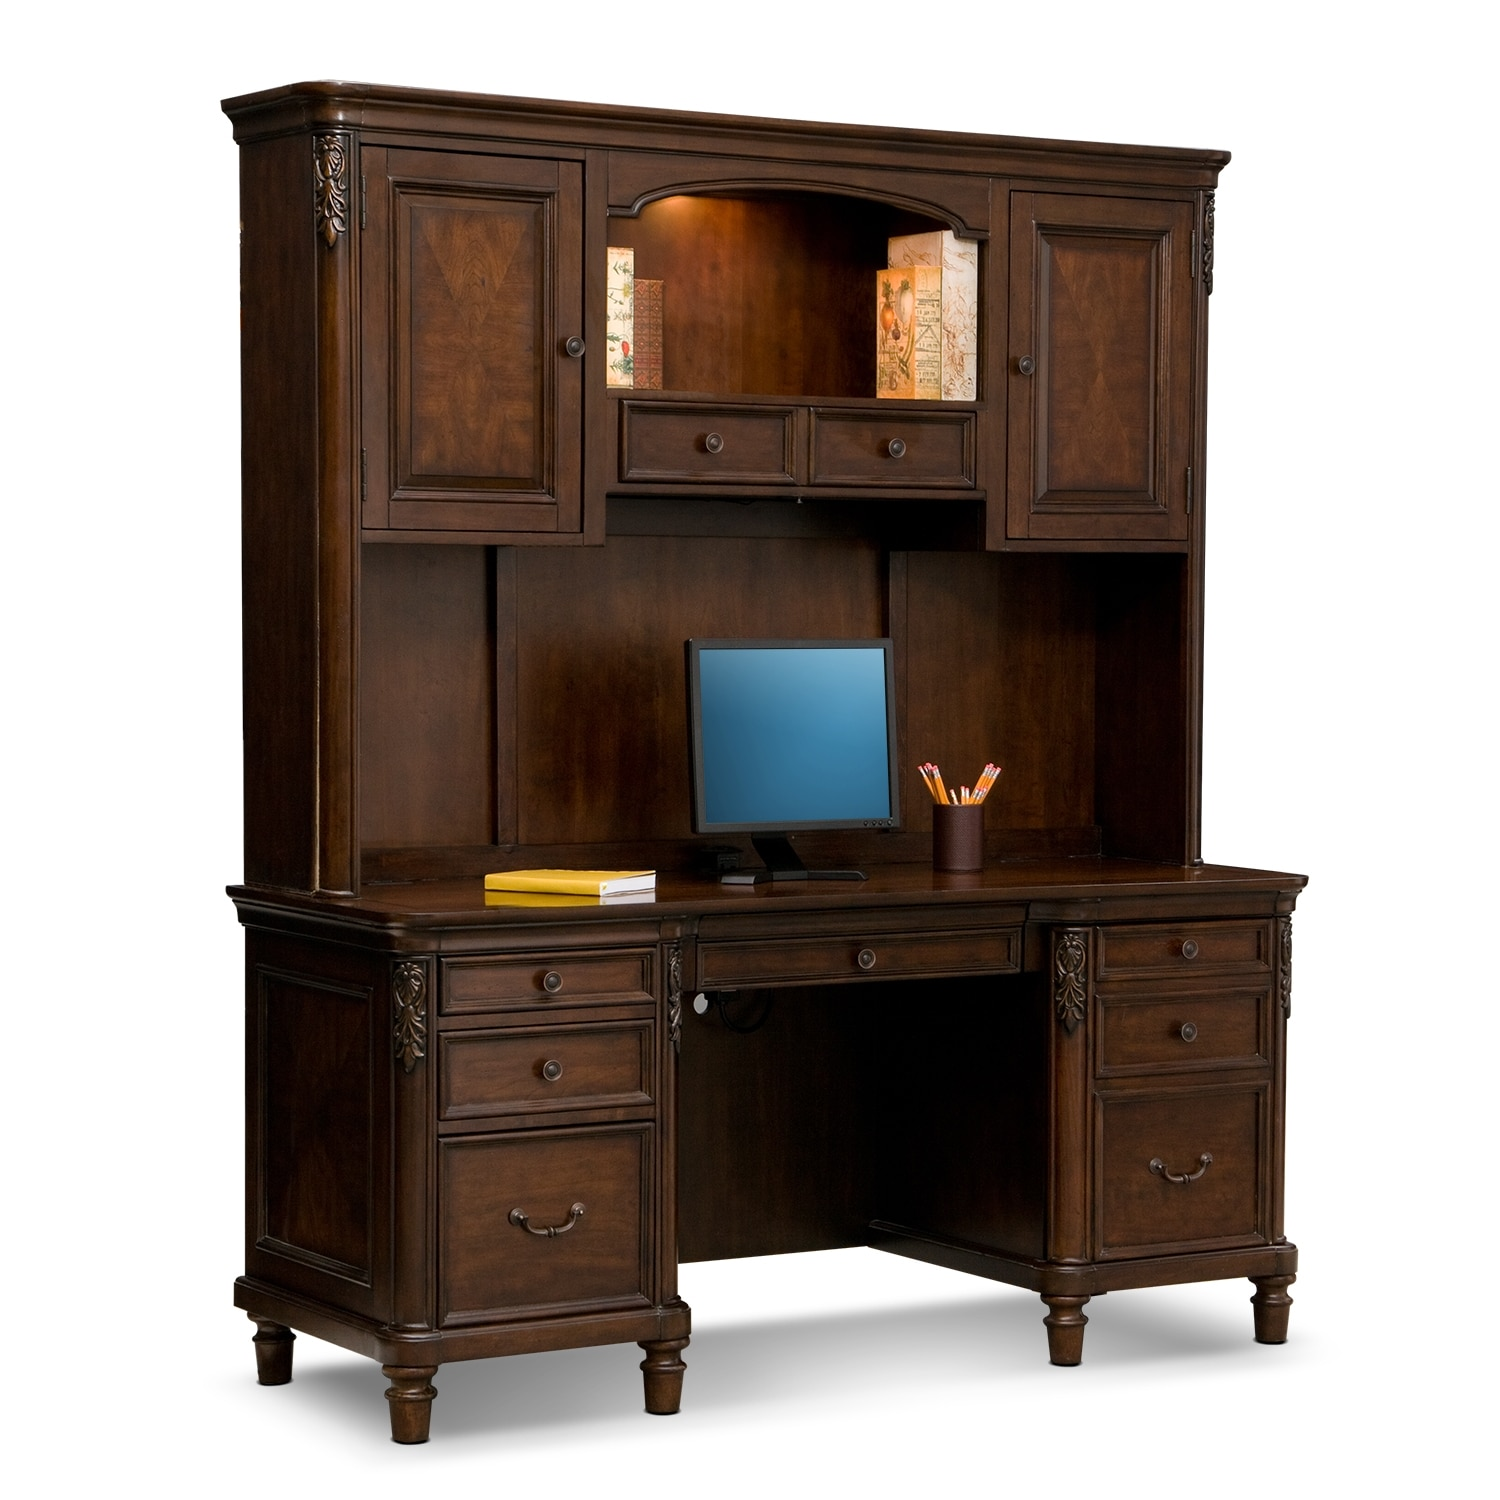 Home Office Furniture - Ashland Credenza Desk with Hutch - Cherry